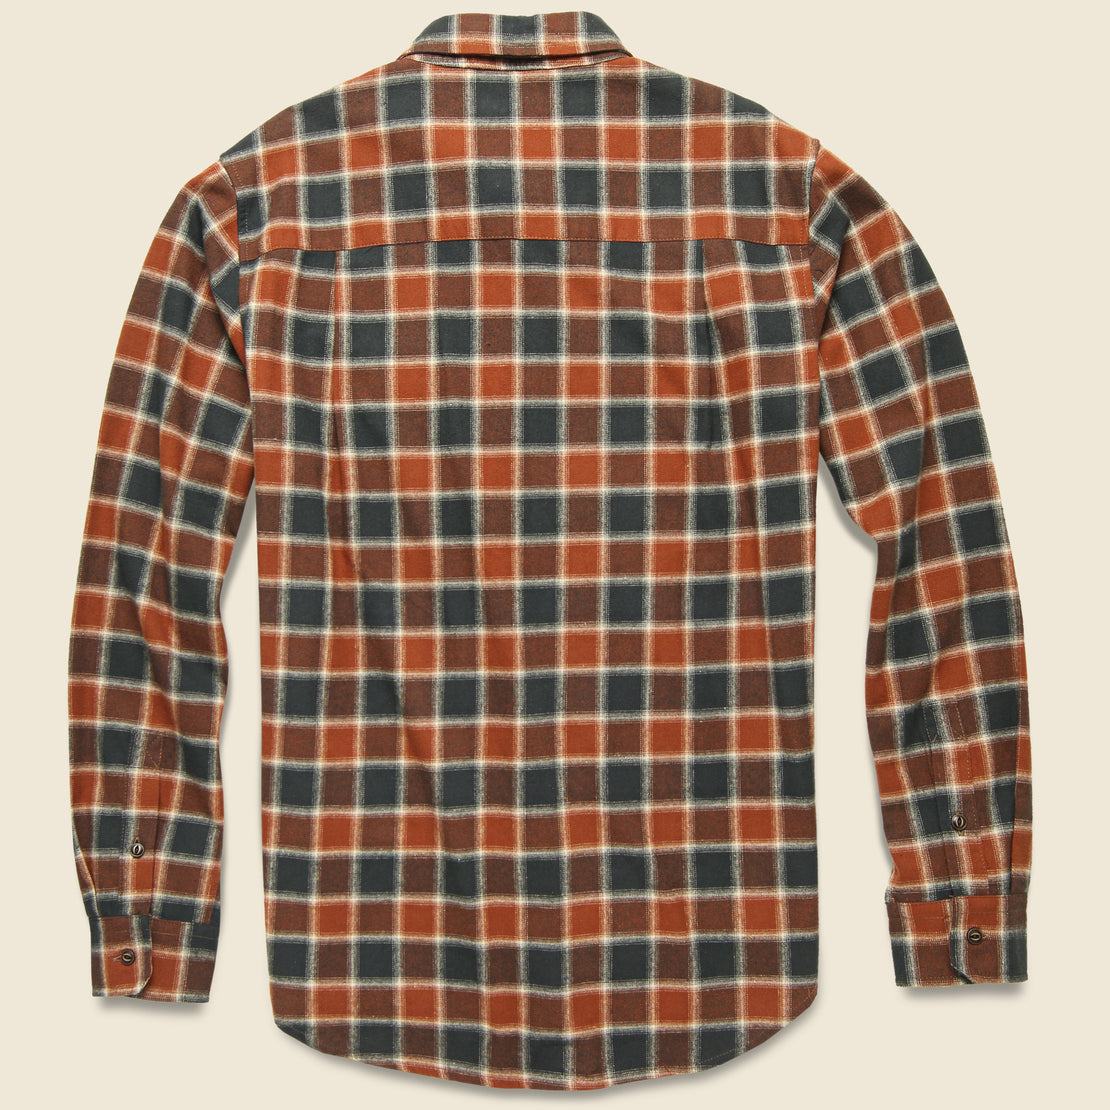 Bedford Flannel - Rust Charcoal Plaid